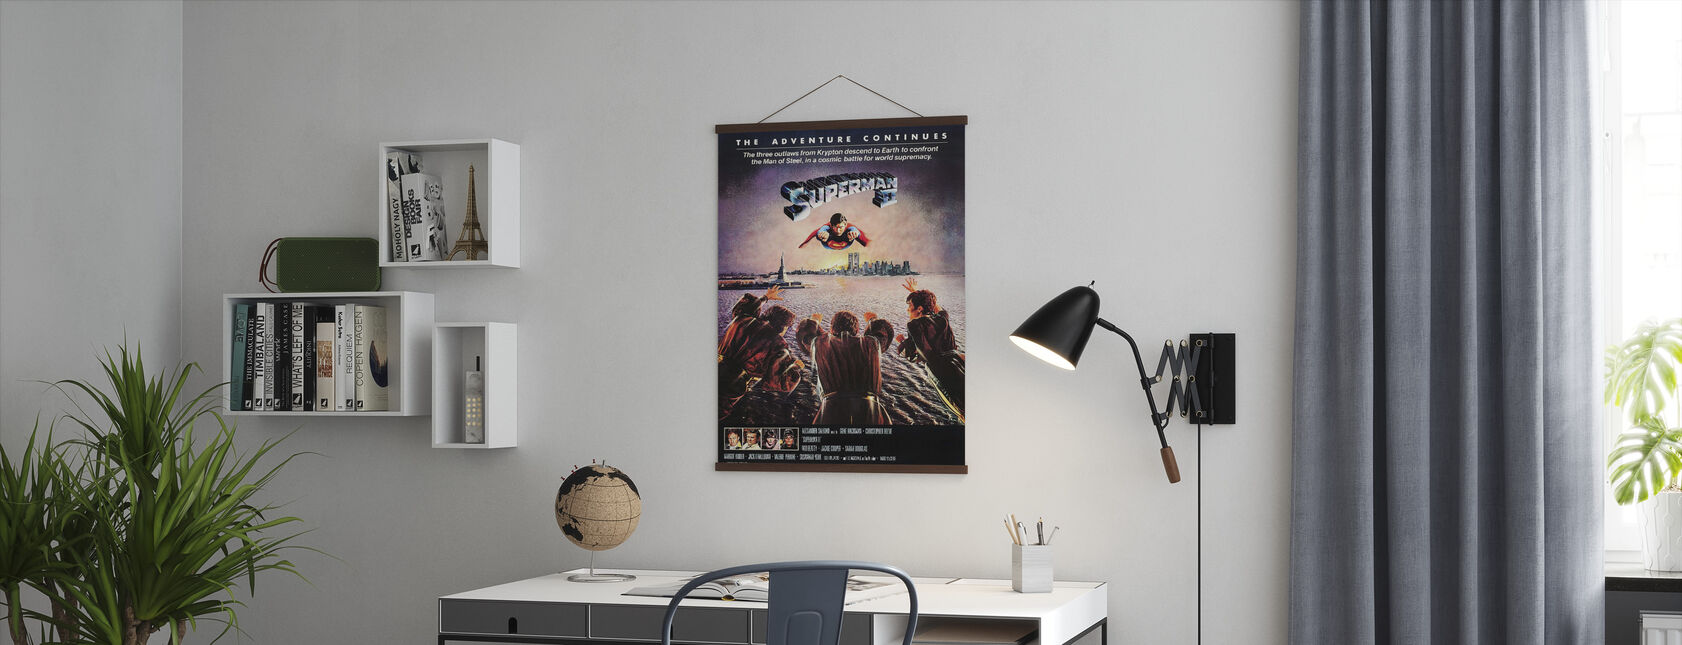 Superman II - Poster - Office